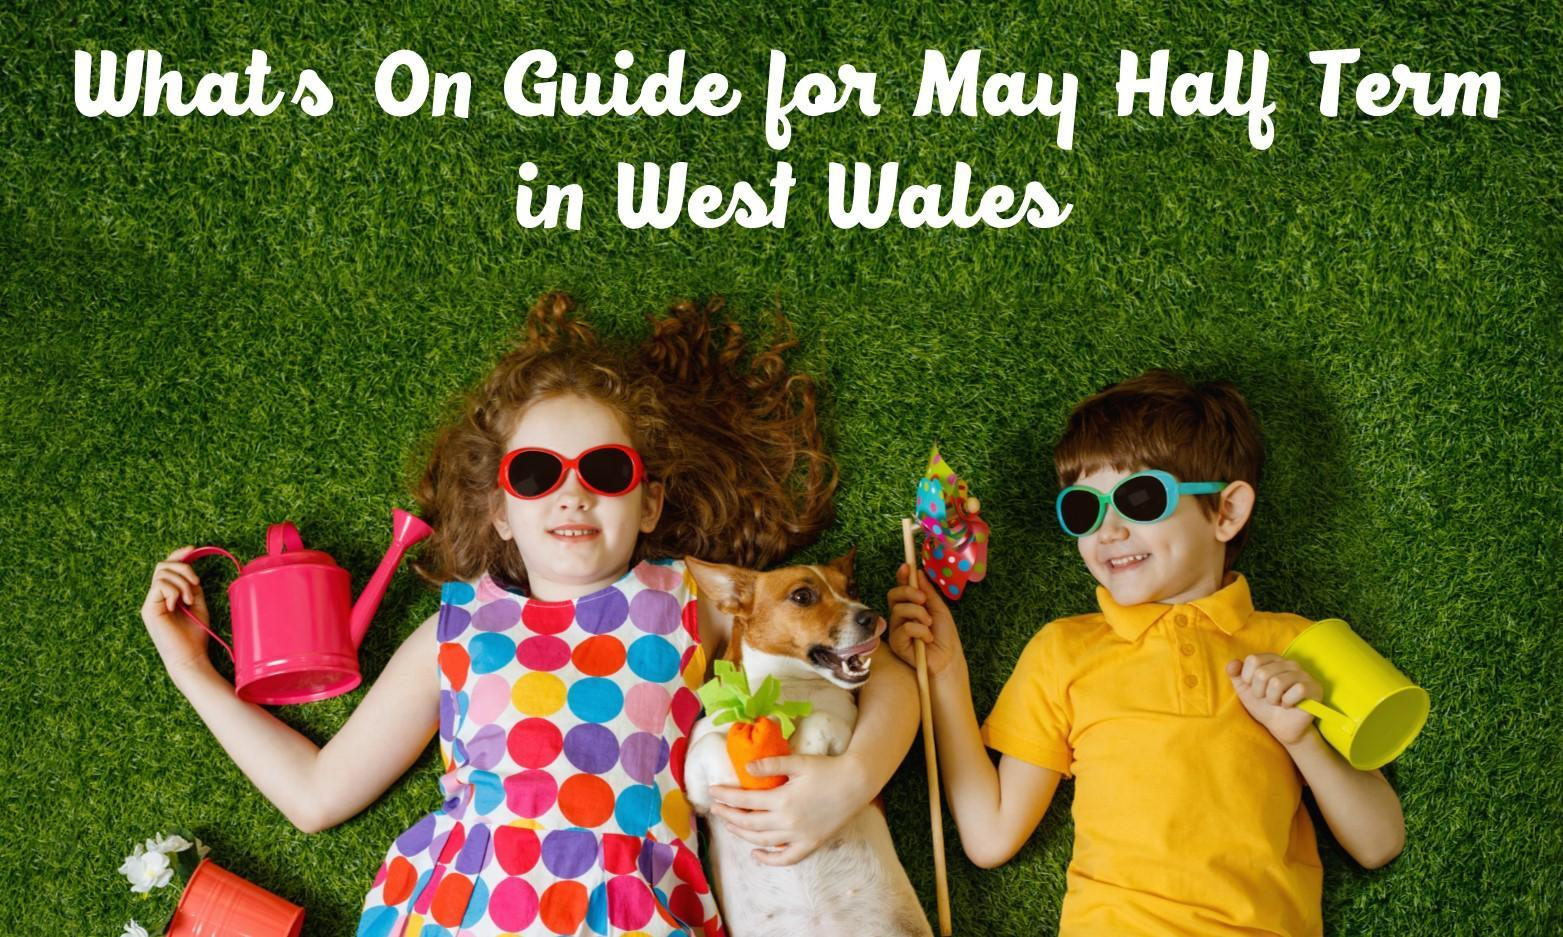 Family What's on Guide for May Half Term in West Wales